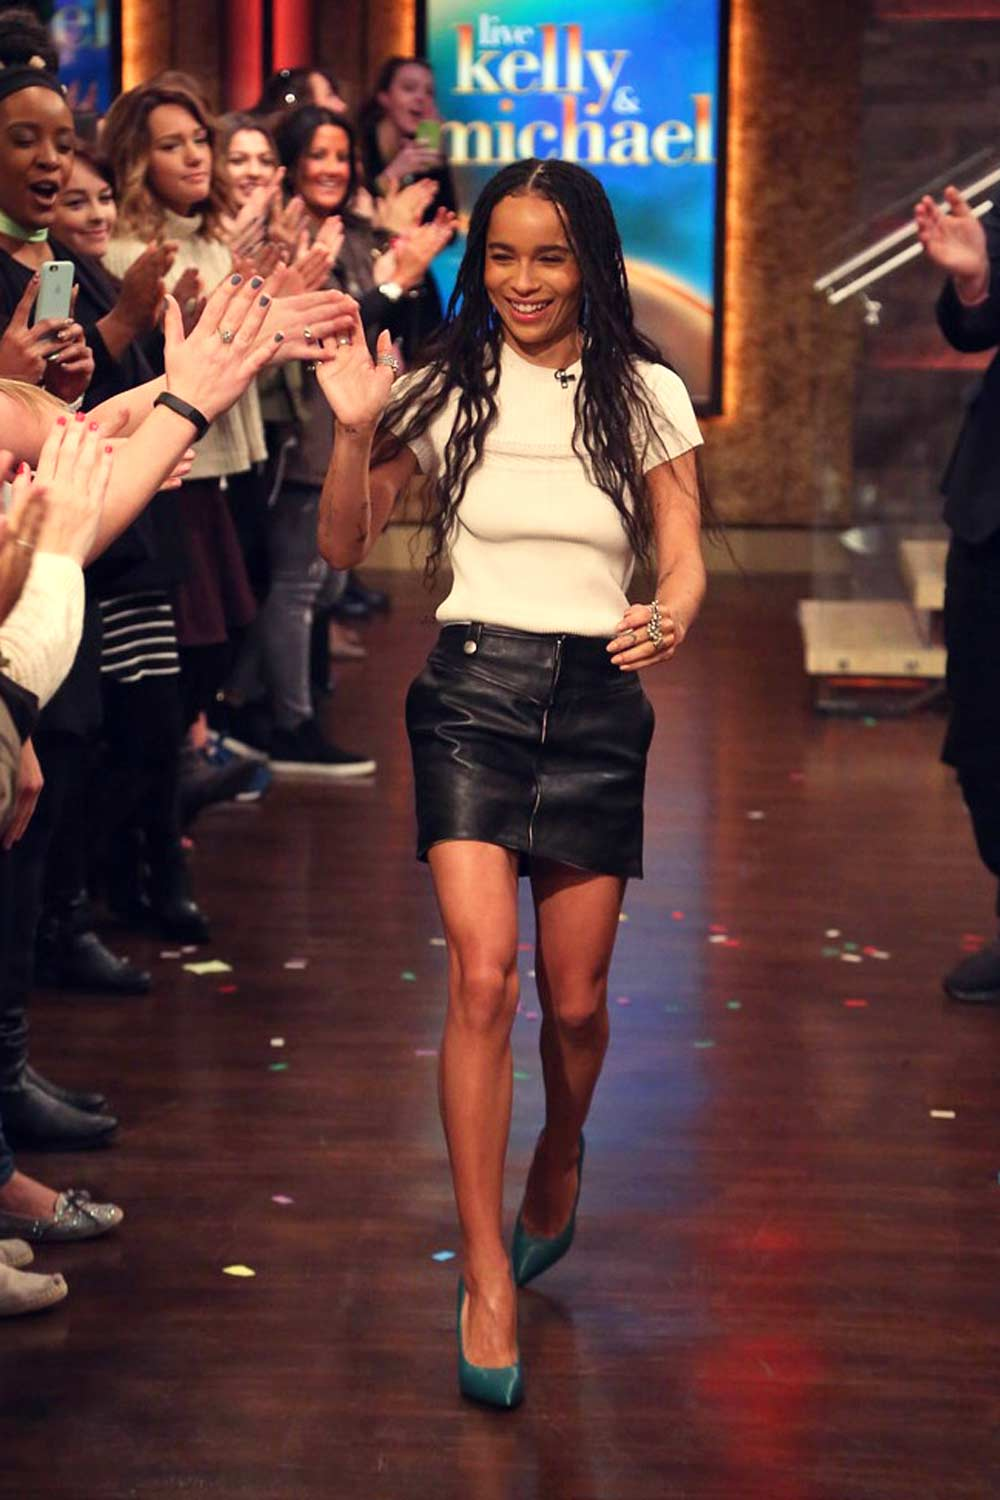 Zoe Kravitz Making Her Way On Stage At Live With Kelly